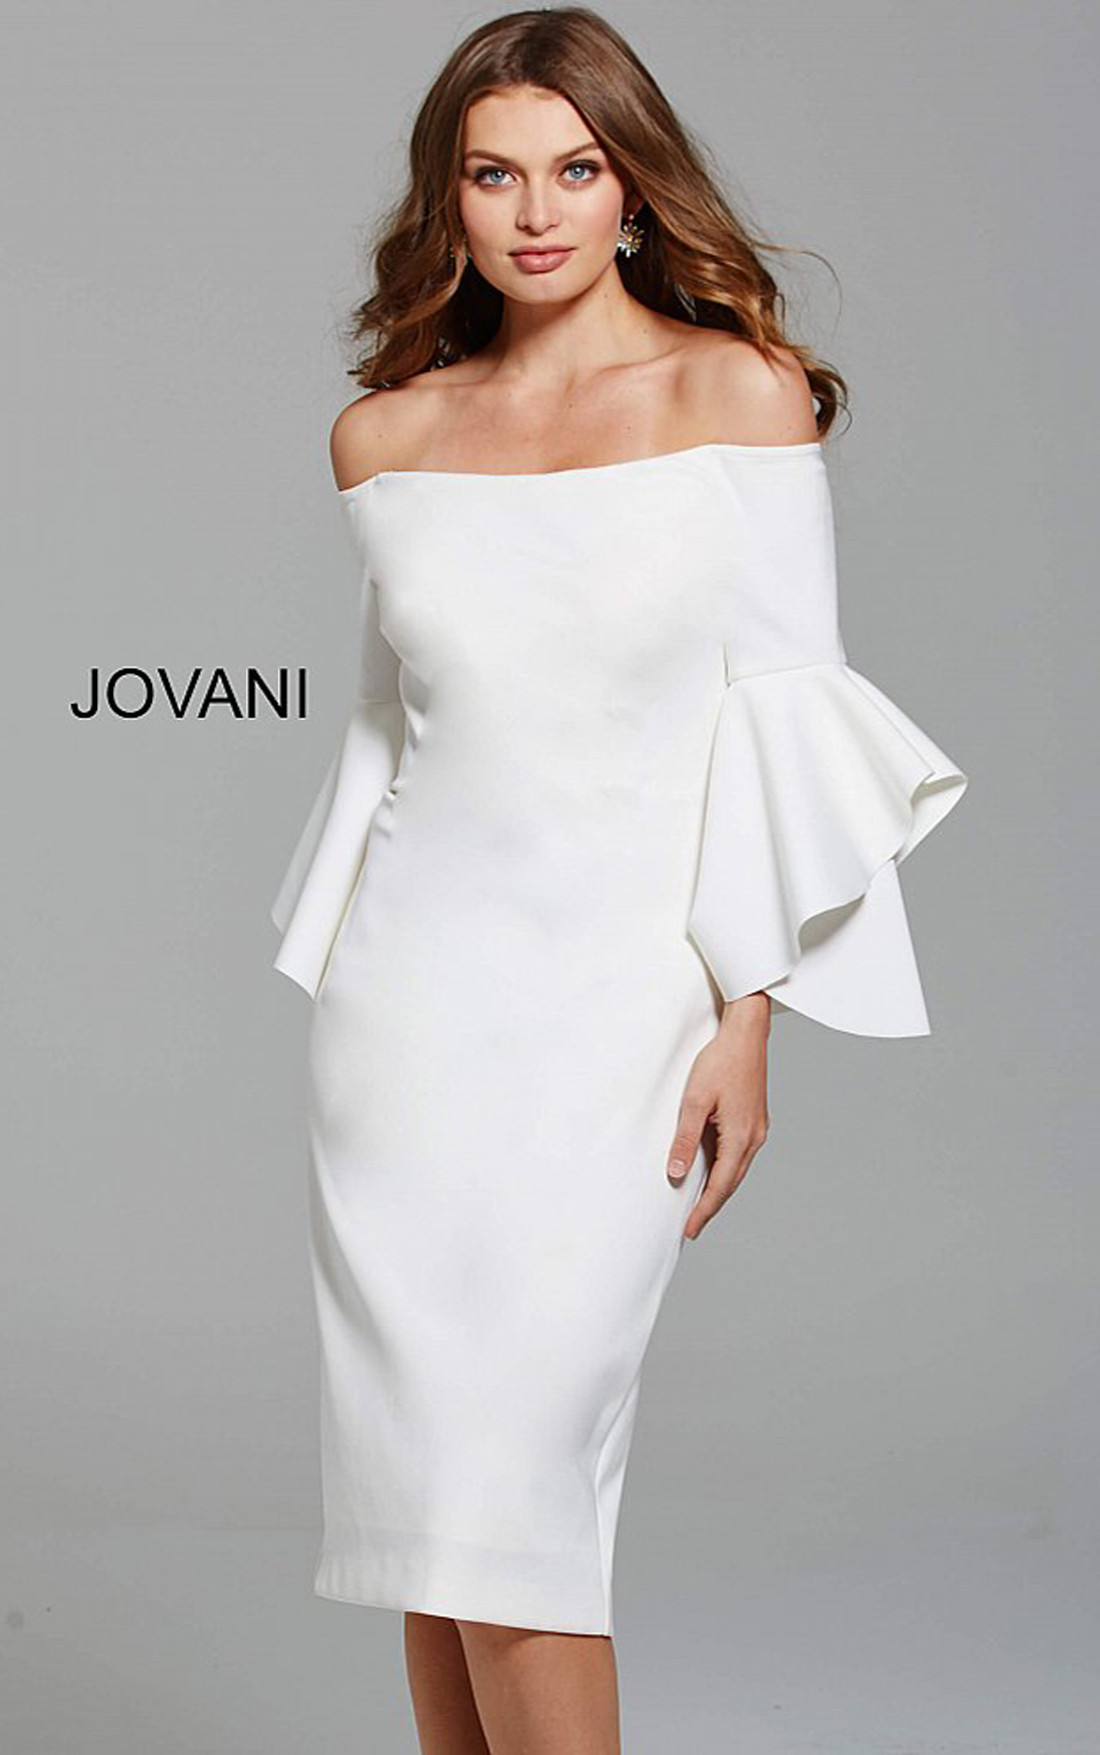 Jovani - White Off the Shoulder Short Dress with Ruffle Bell Sleeves (57064)